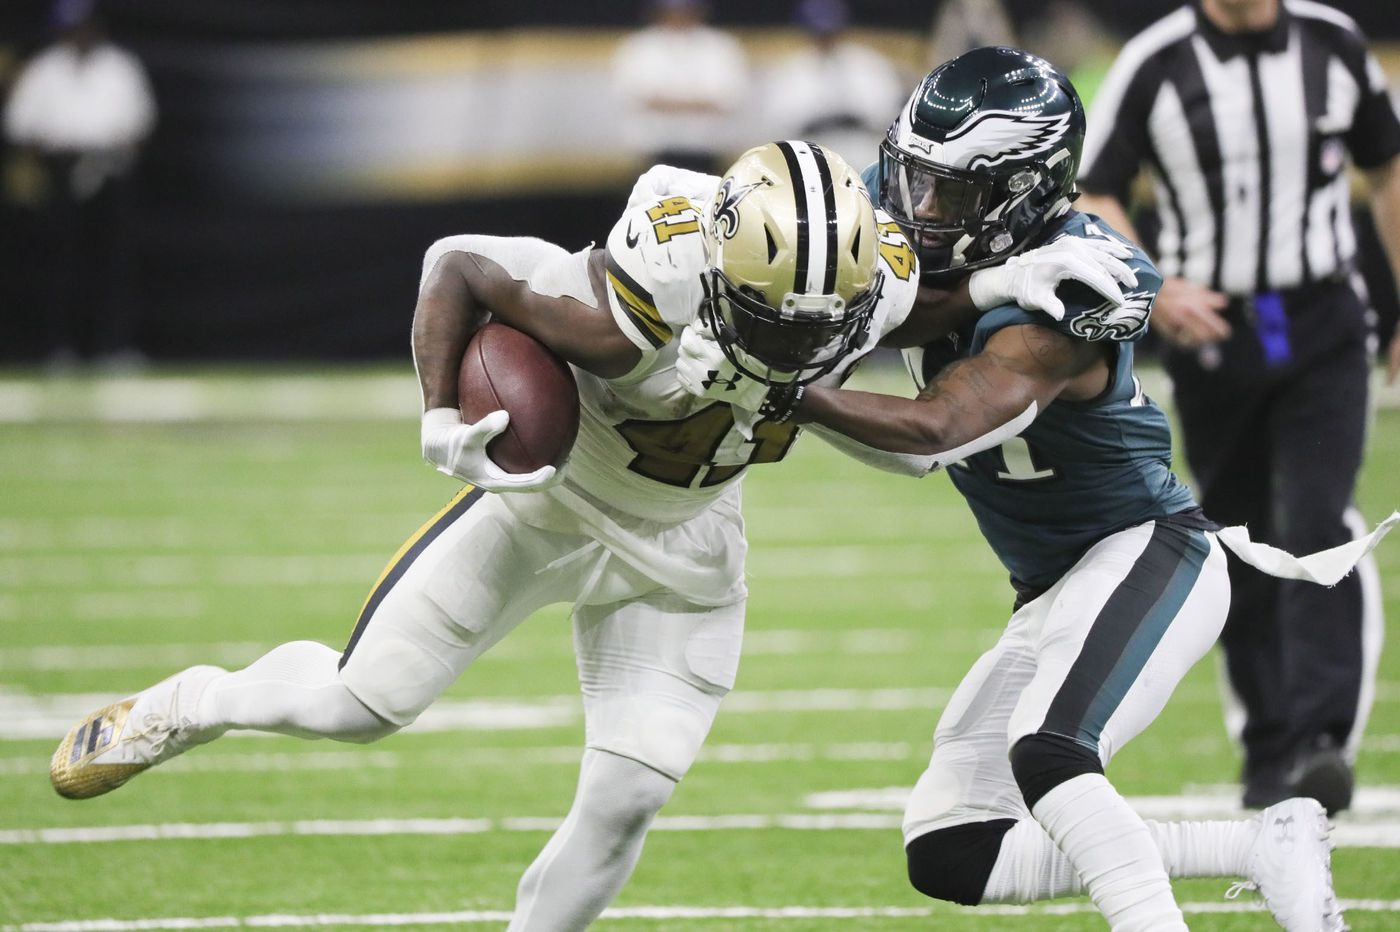 Grading the Eagles: Pass offense, run defense earn an 'F' in loss to Saints | Paul Domowitch